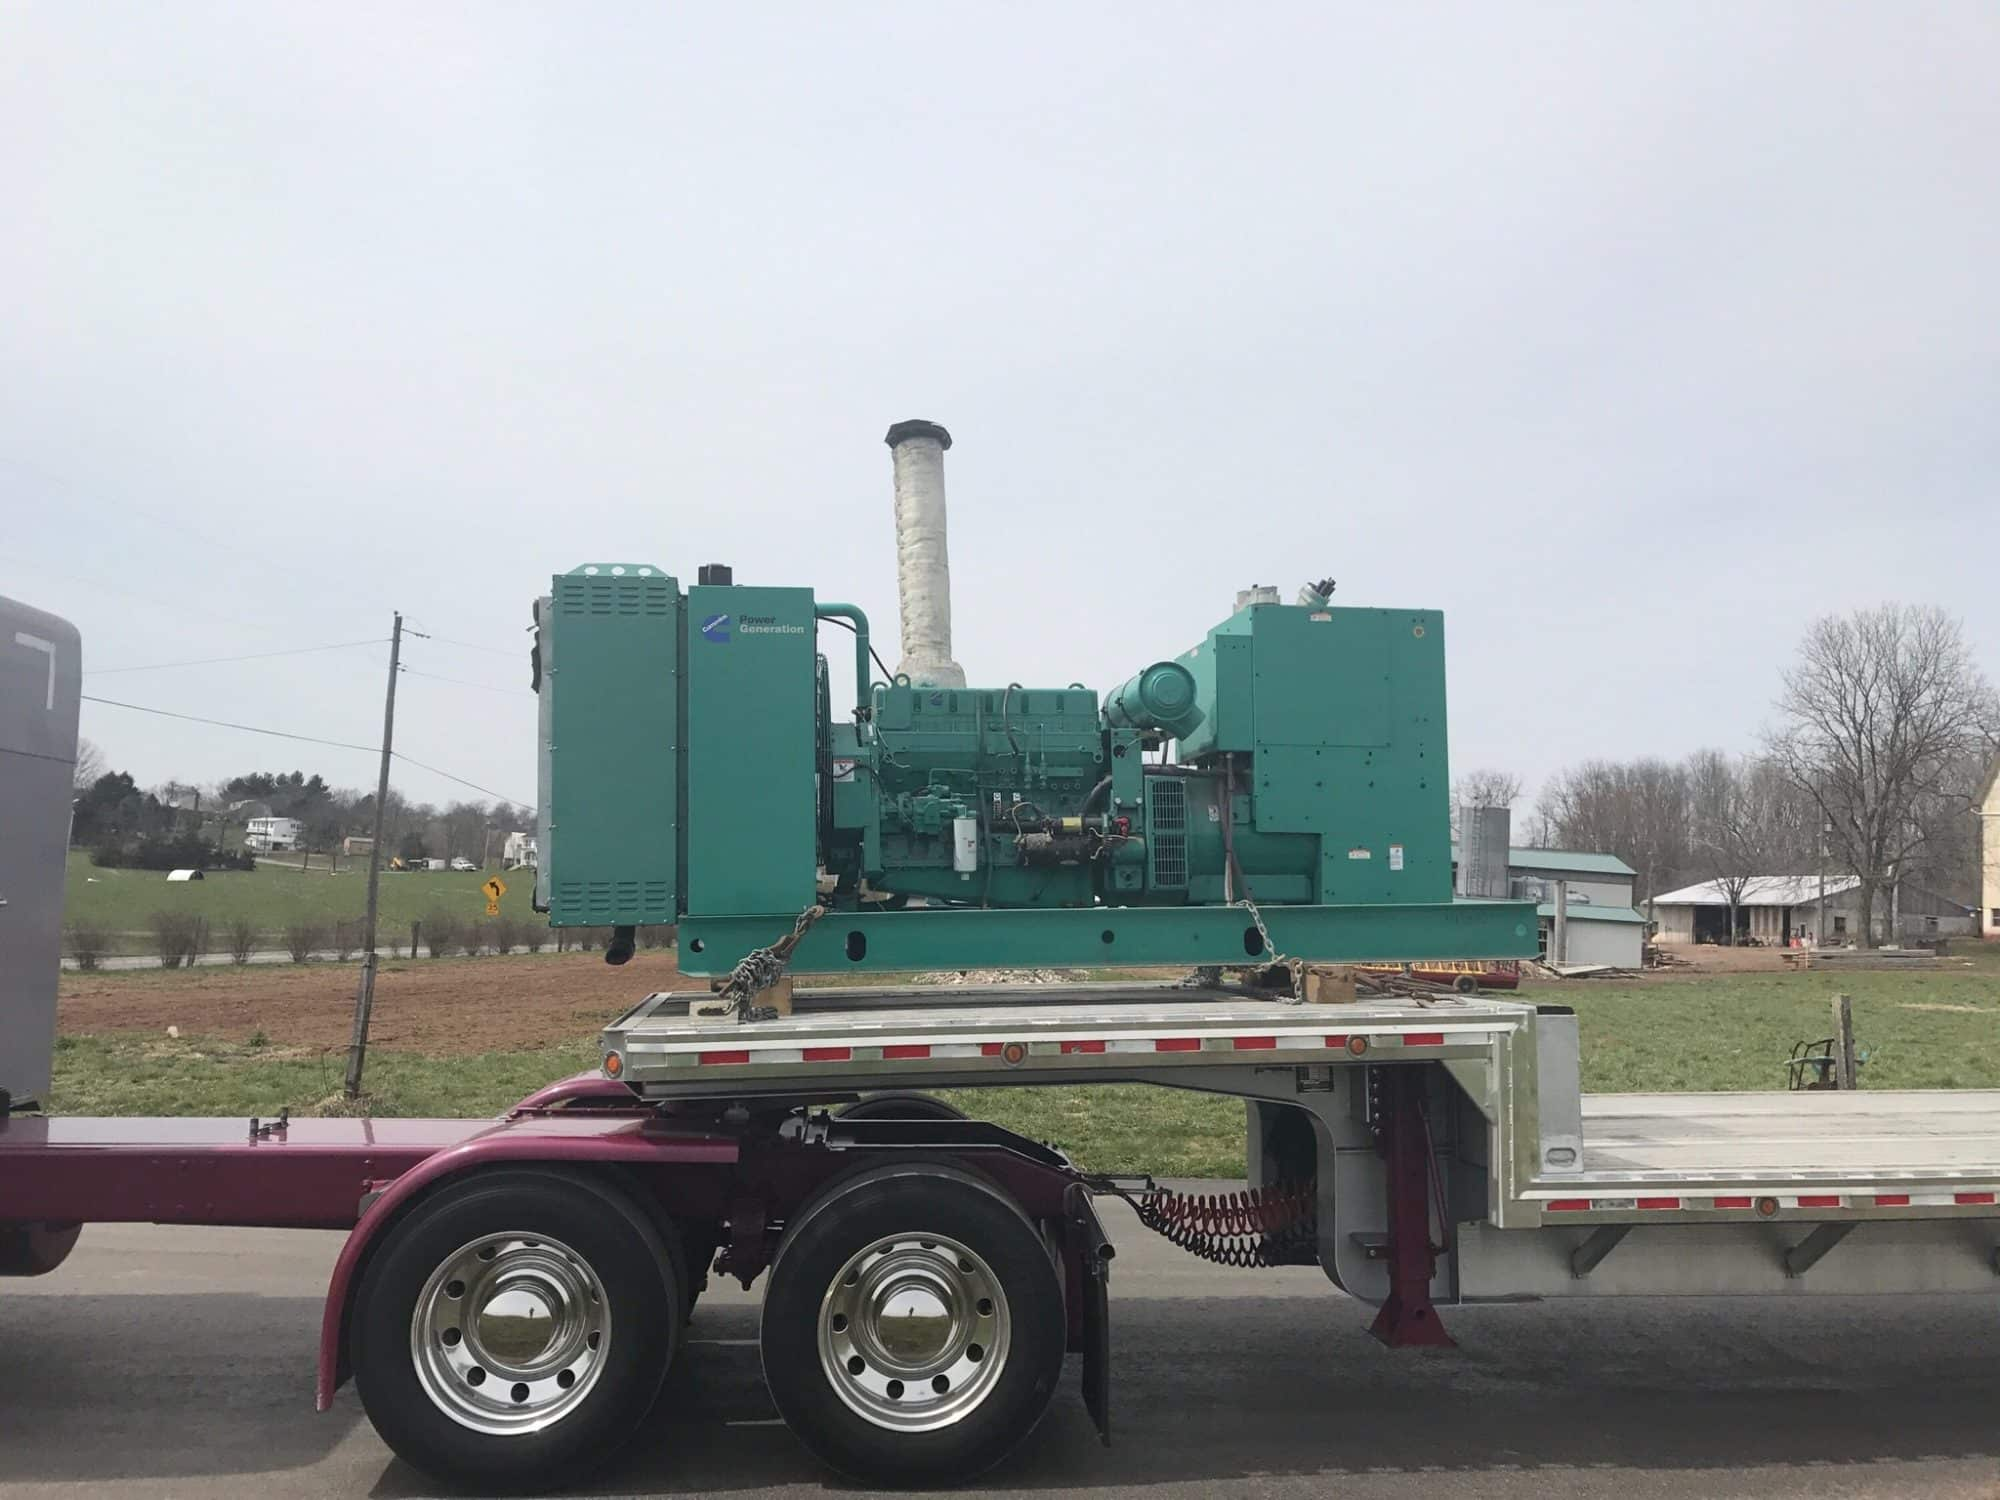 Used Generators For Sale: Craigslist Isn't the Place to Buy